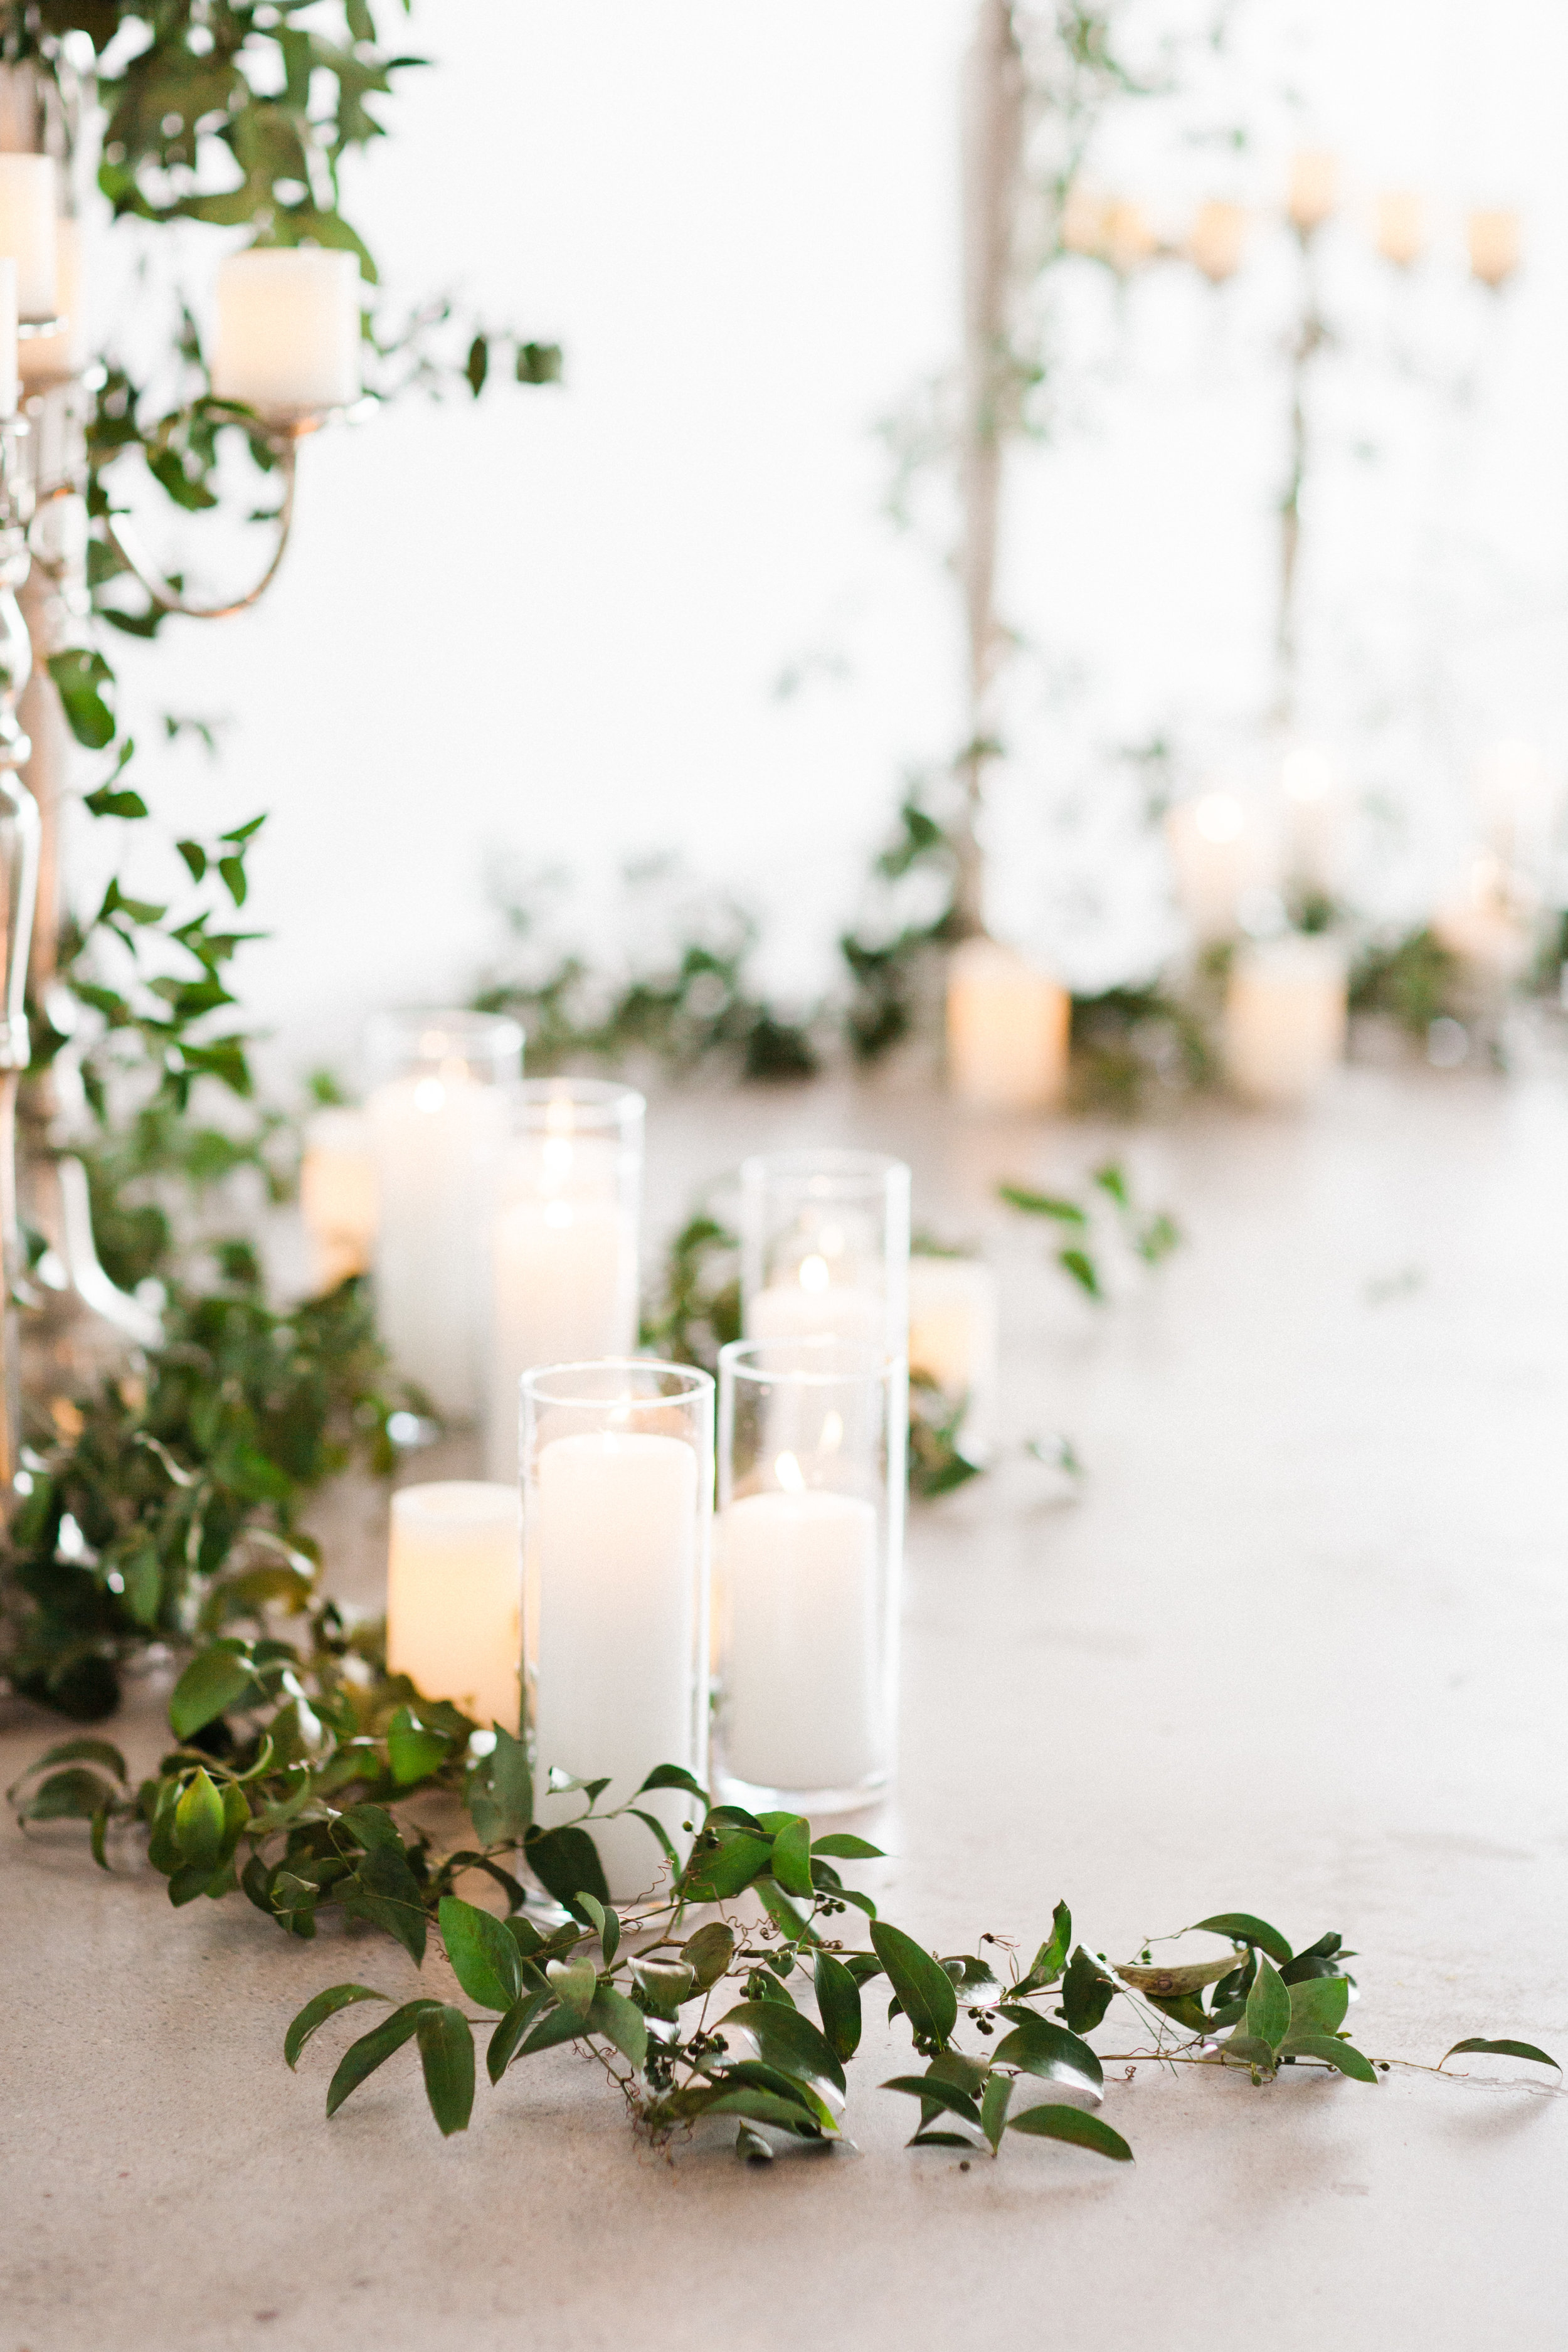 Mauve and Lavender Modern Wedding Inspiration - Greenery and Candle Decor